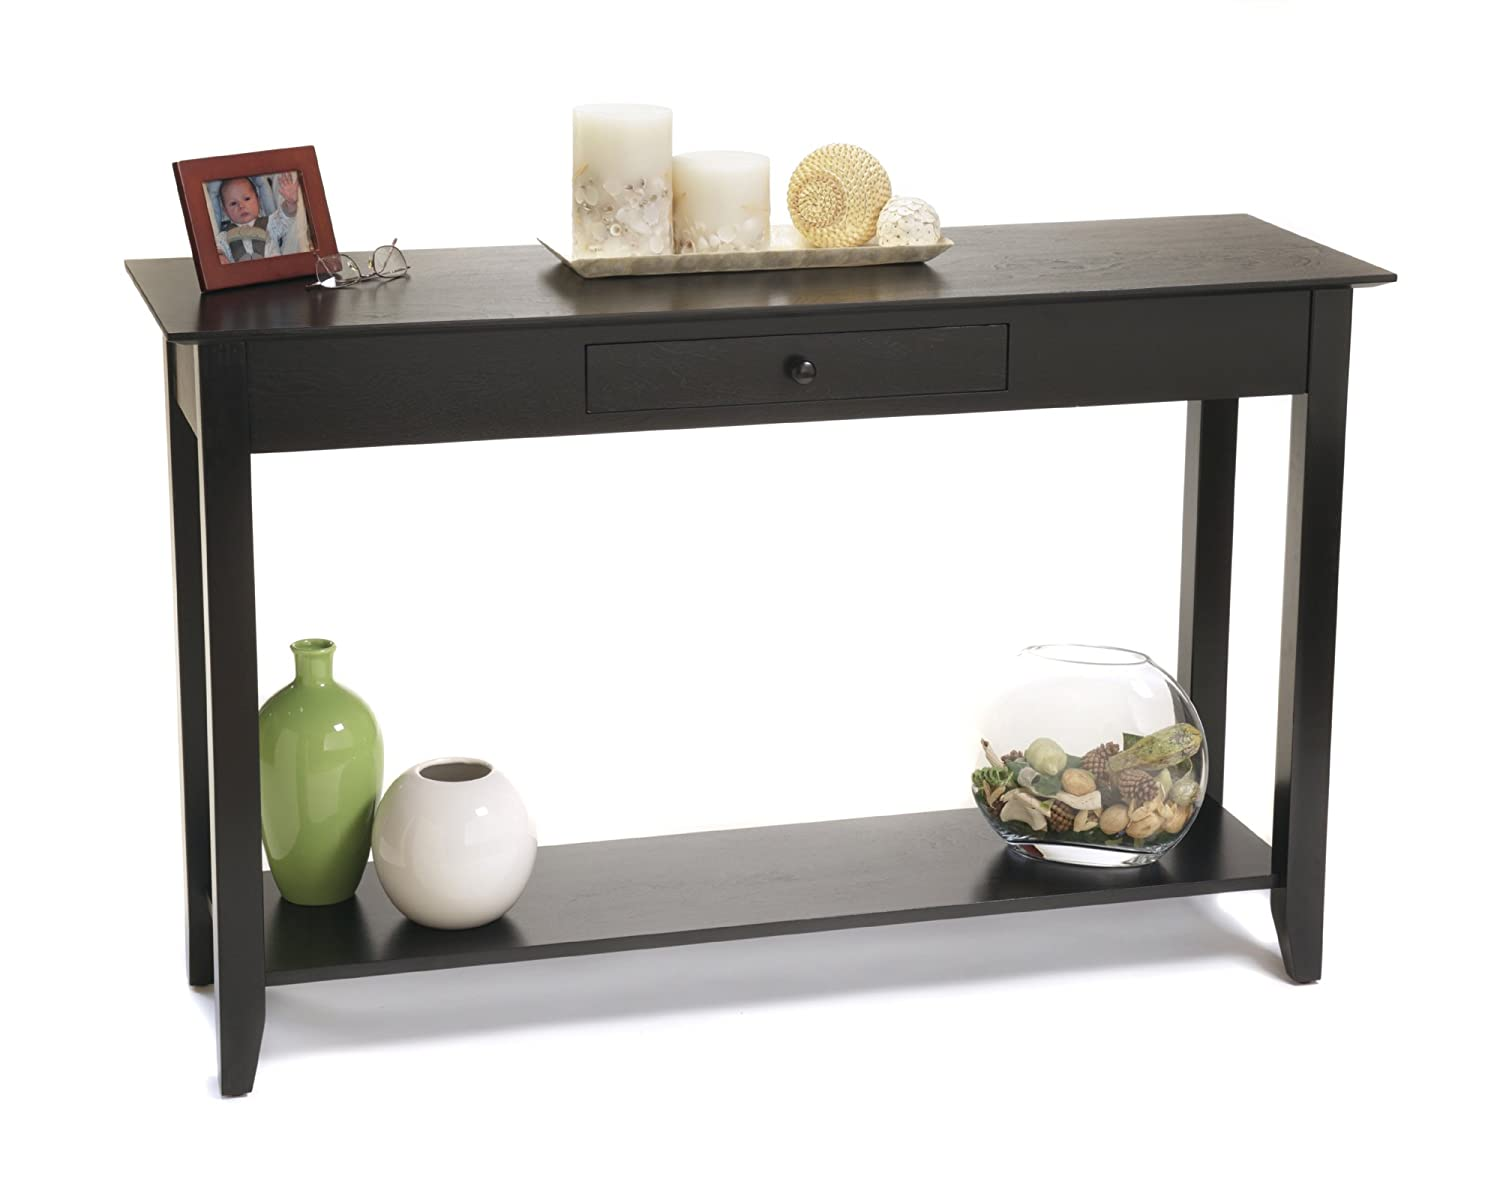 black console table native home garden design. Black Bedroom Furniture Sets. Home Design Ideas